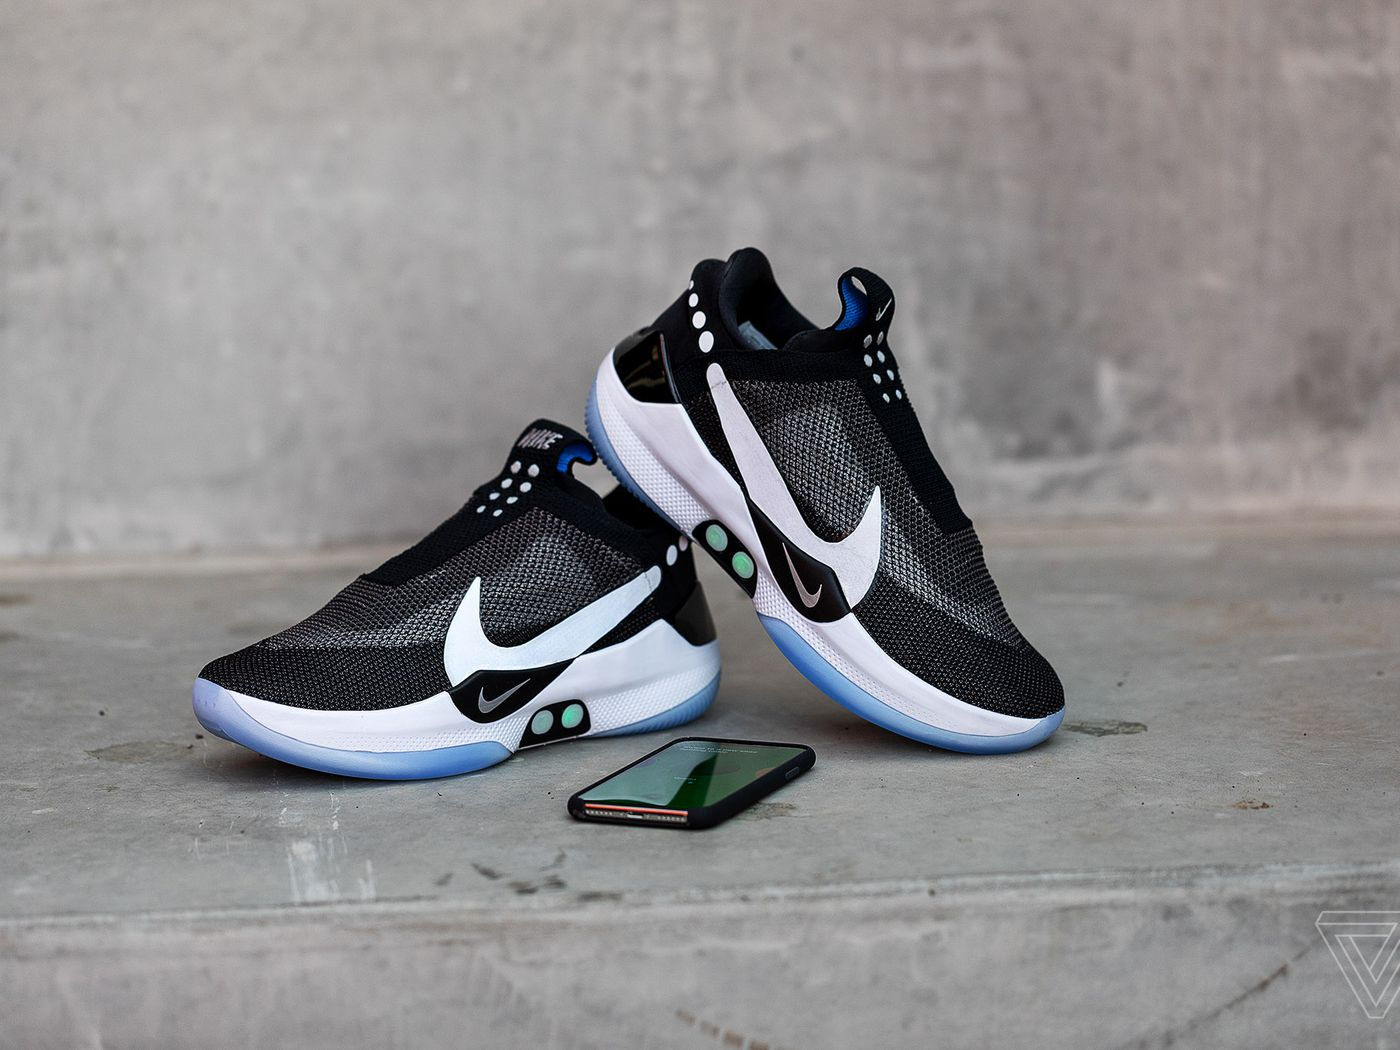 cf42eb75560ff Nike s Adapt BB self-lacing sneakers let you tie your shoes from an app -  The Verge